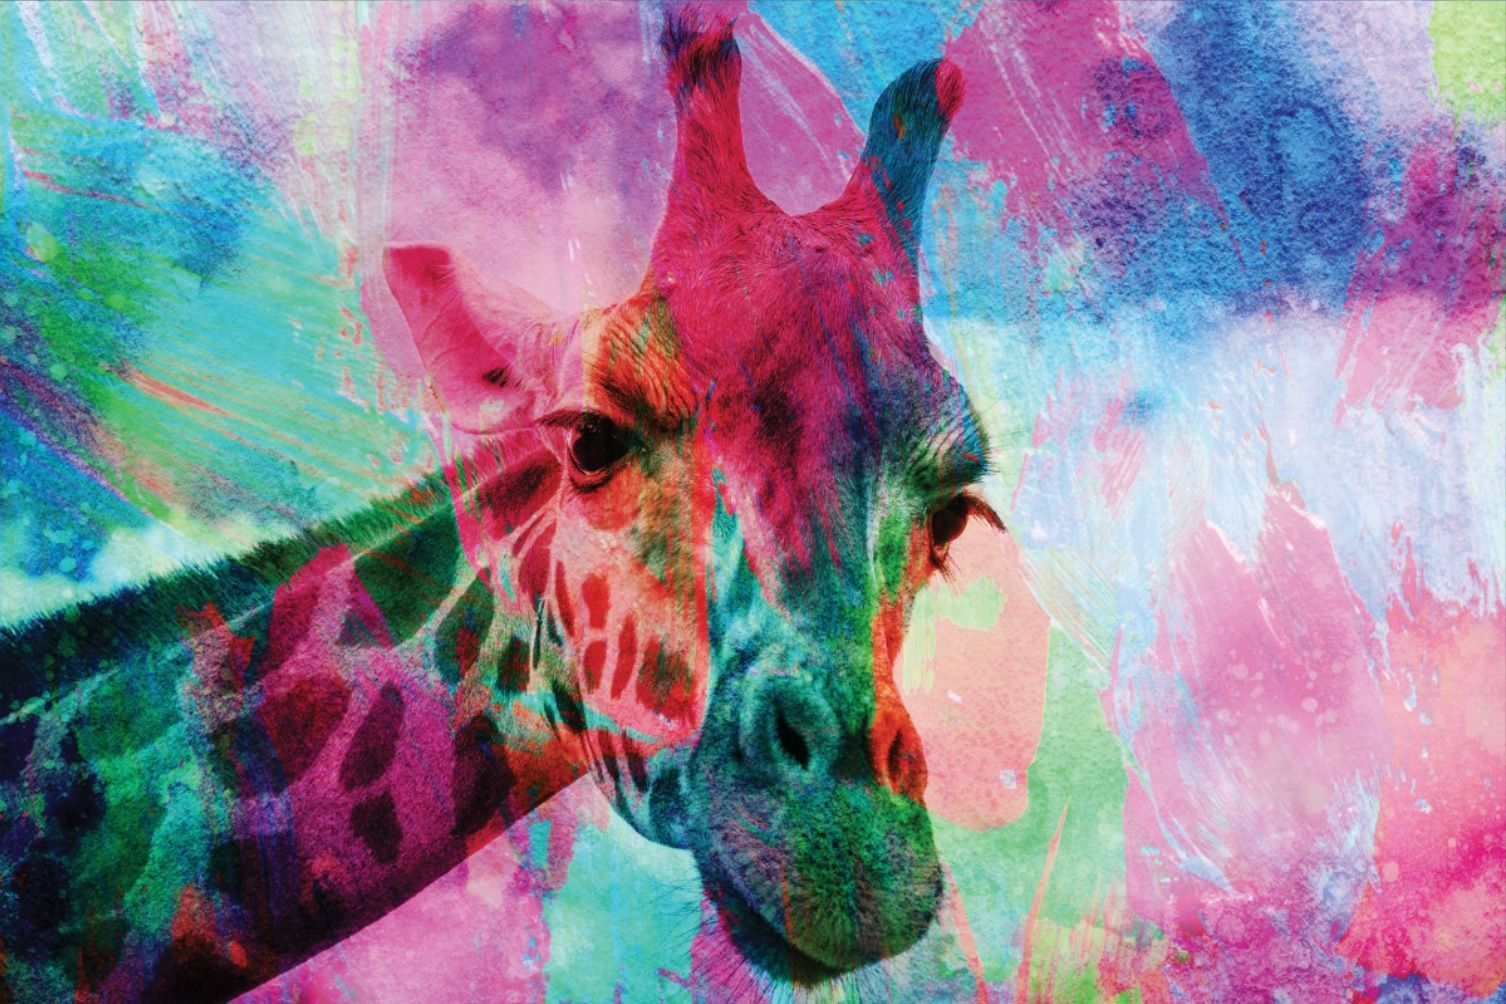 Abstract Giraffe in Rainbow